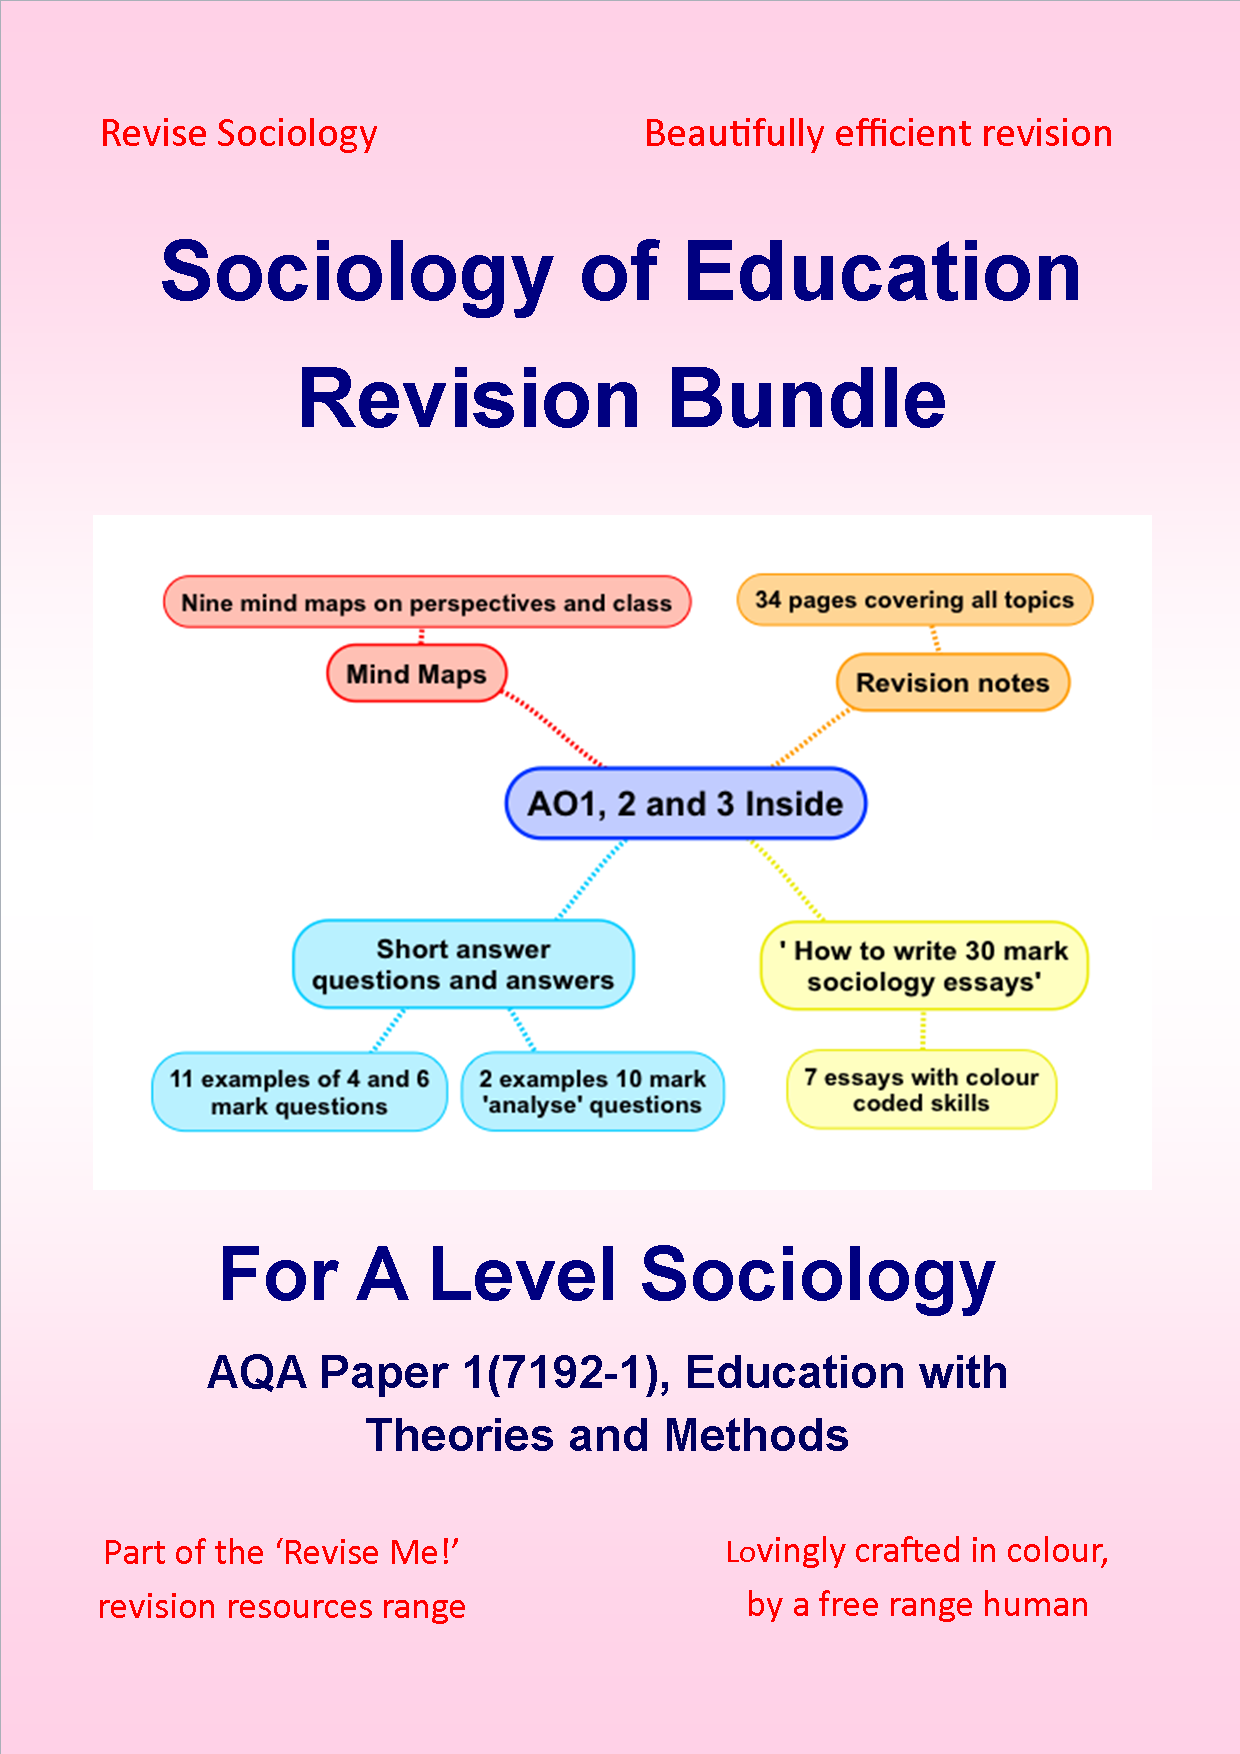 theory and methods a level sociology revision bundle pdf